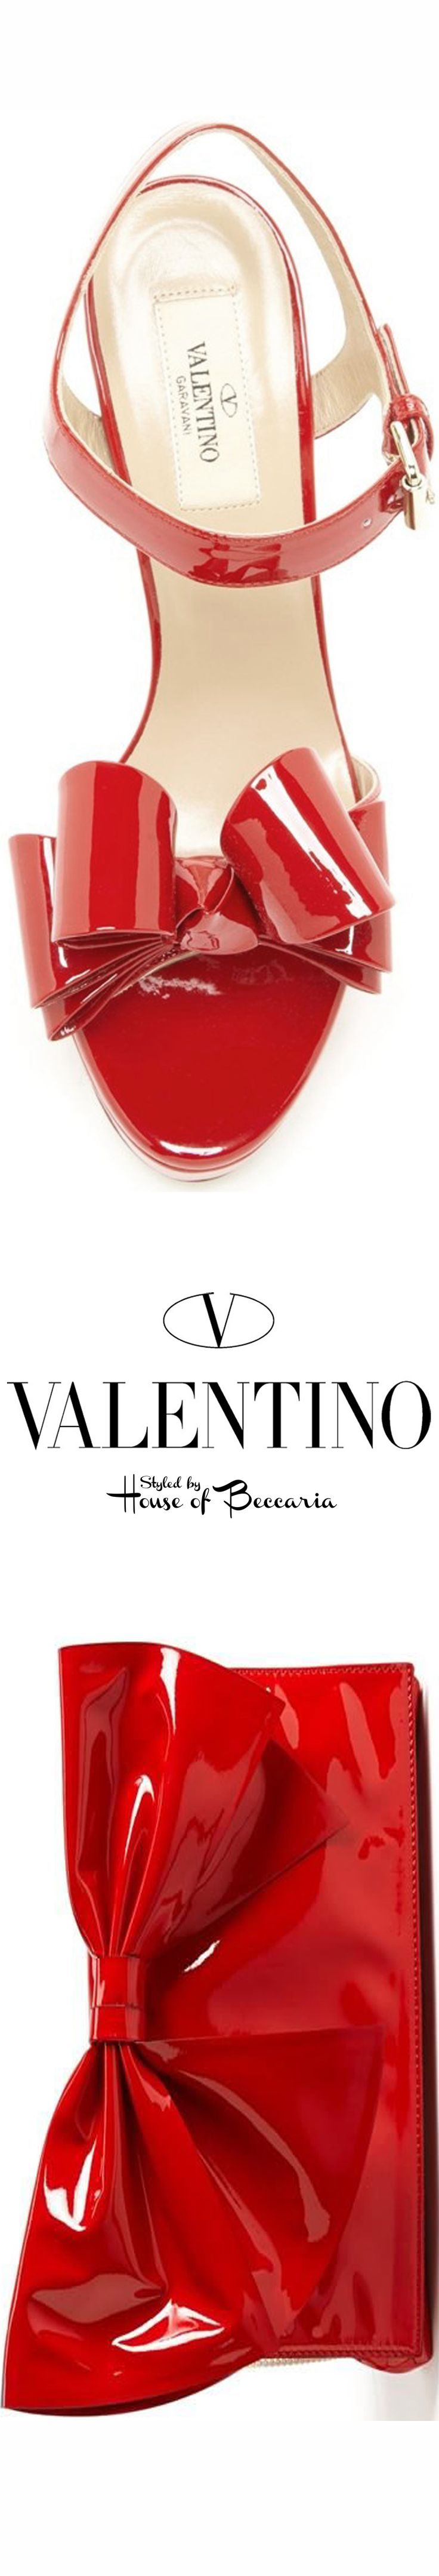 ~Iconic Valentino Bow Red Patent Leather  Accessories | House of Beccaria#